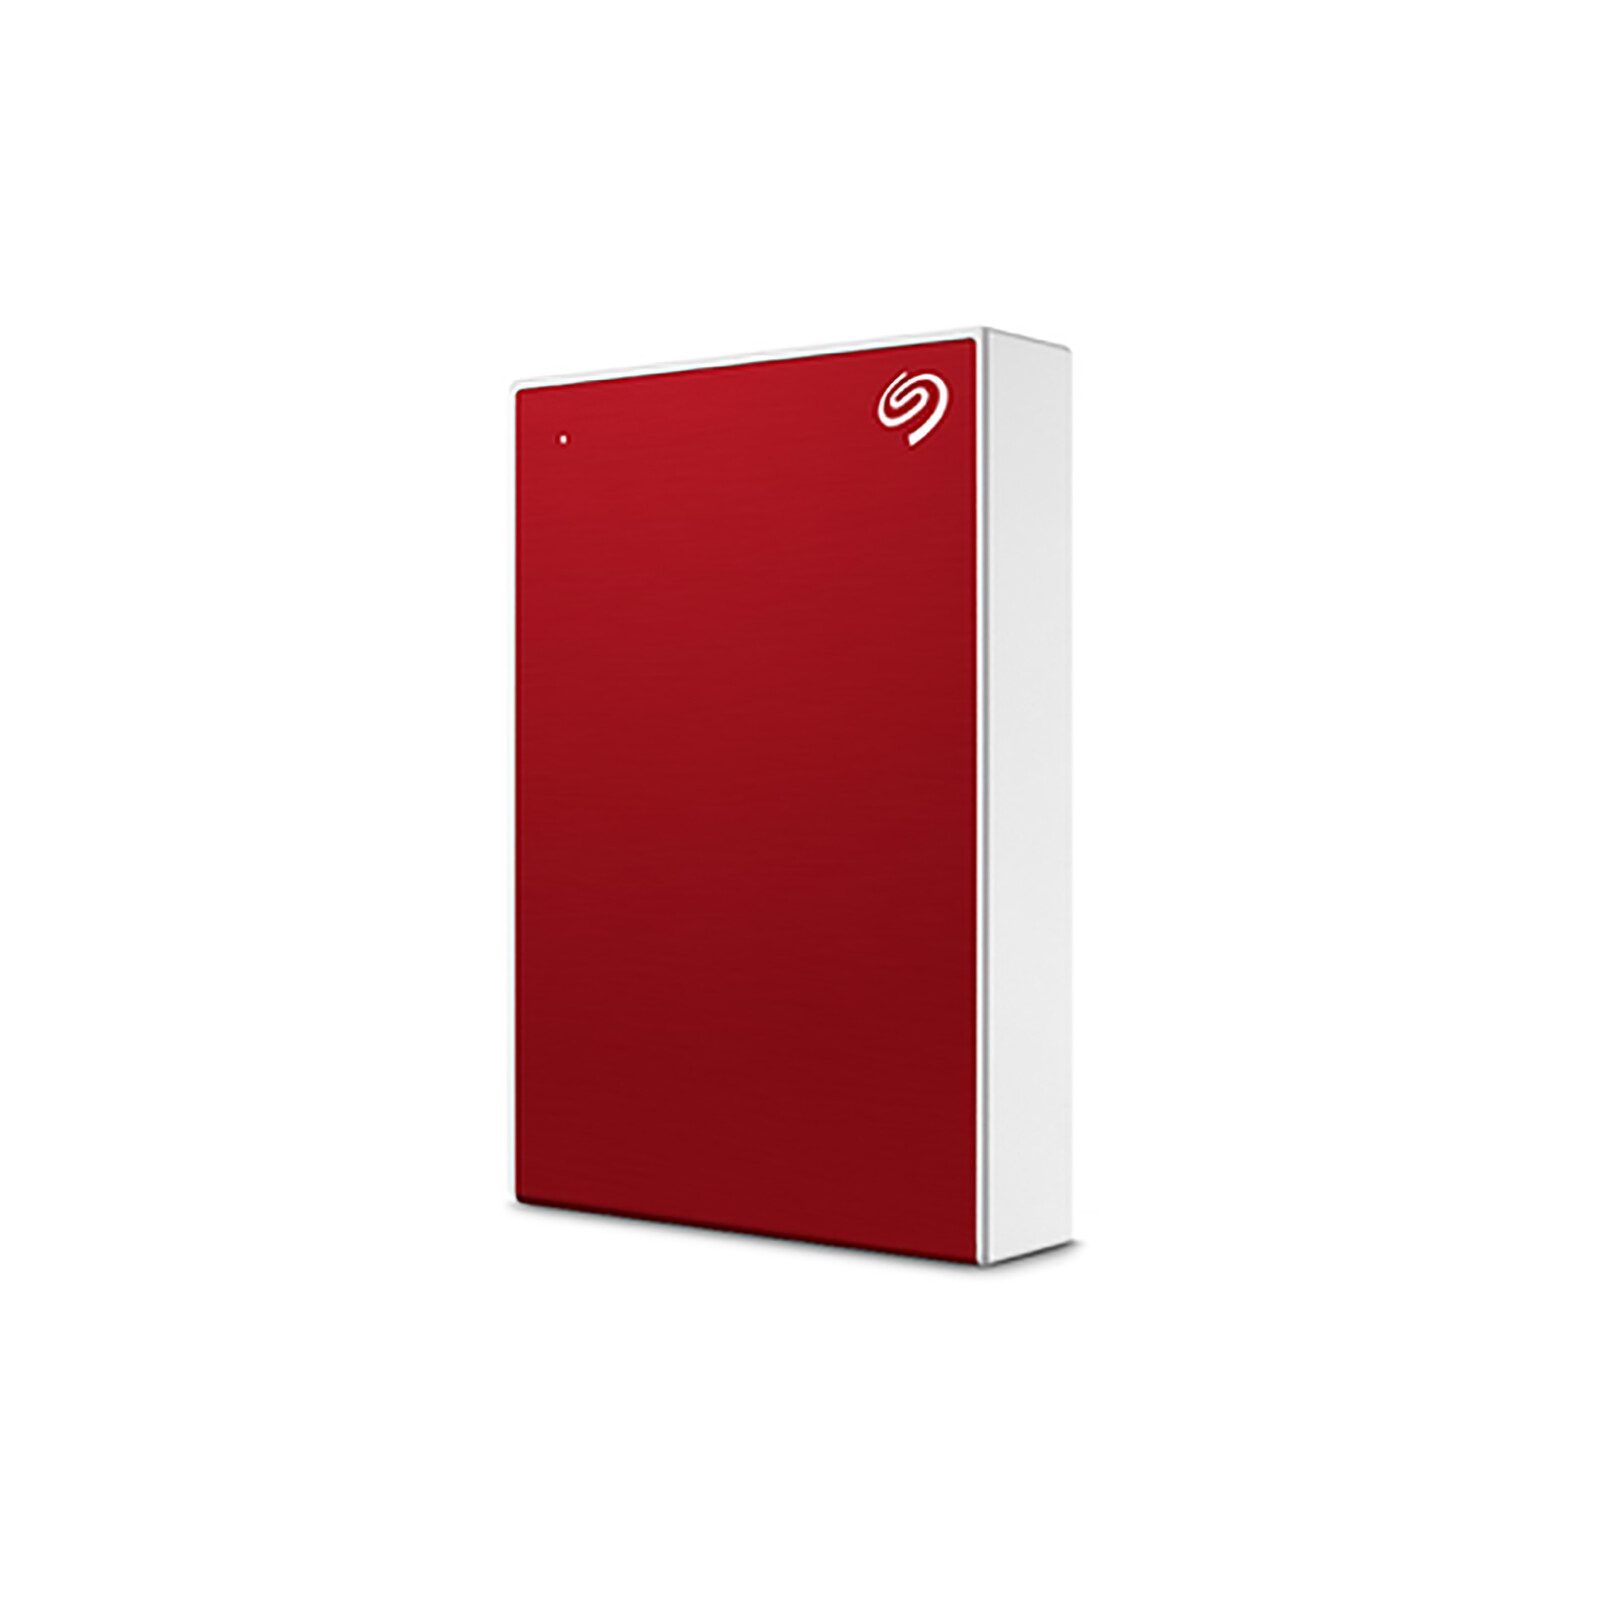 Seagate One Touch 2TB USB 3 red